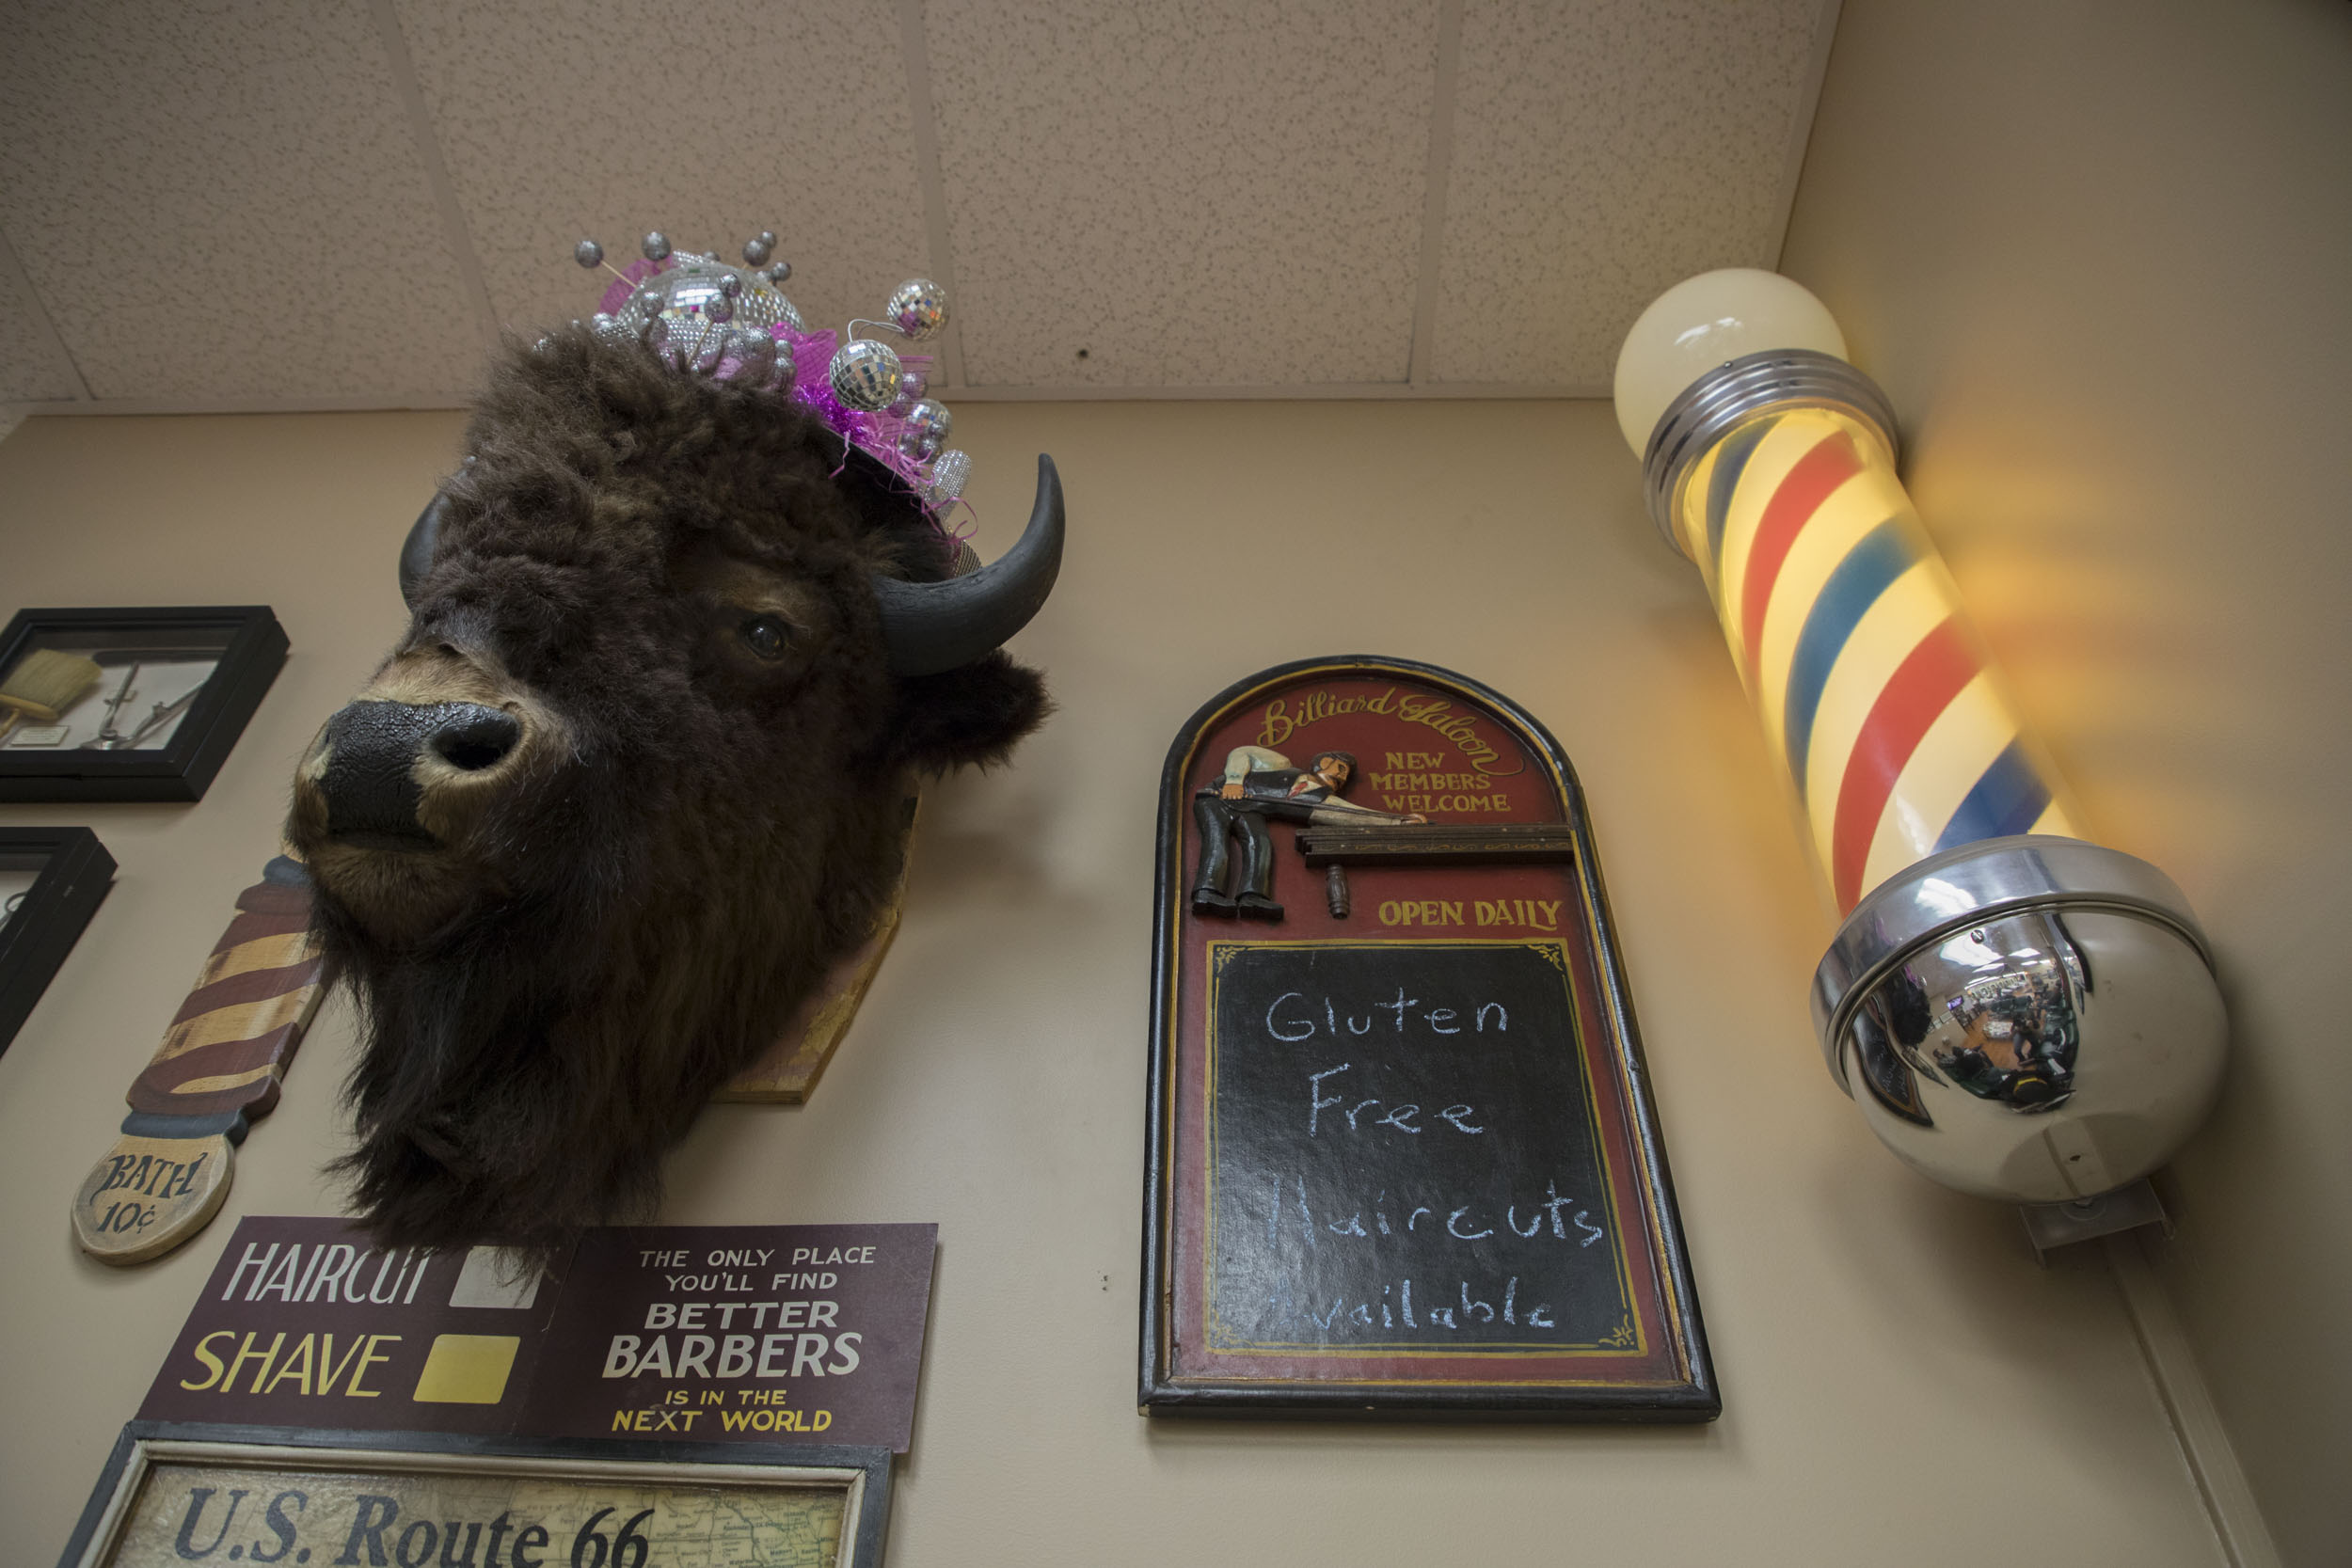 Whimsical decor in the waiting area at Father and Son barbershop. (Andrew Gill/WBEZ)